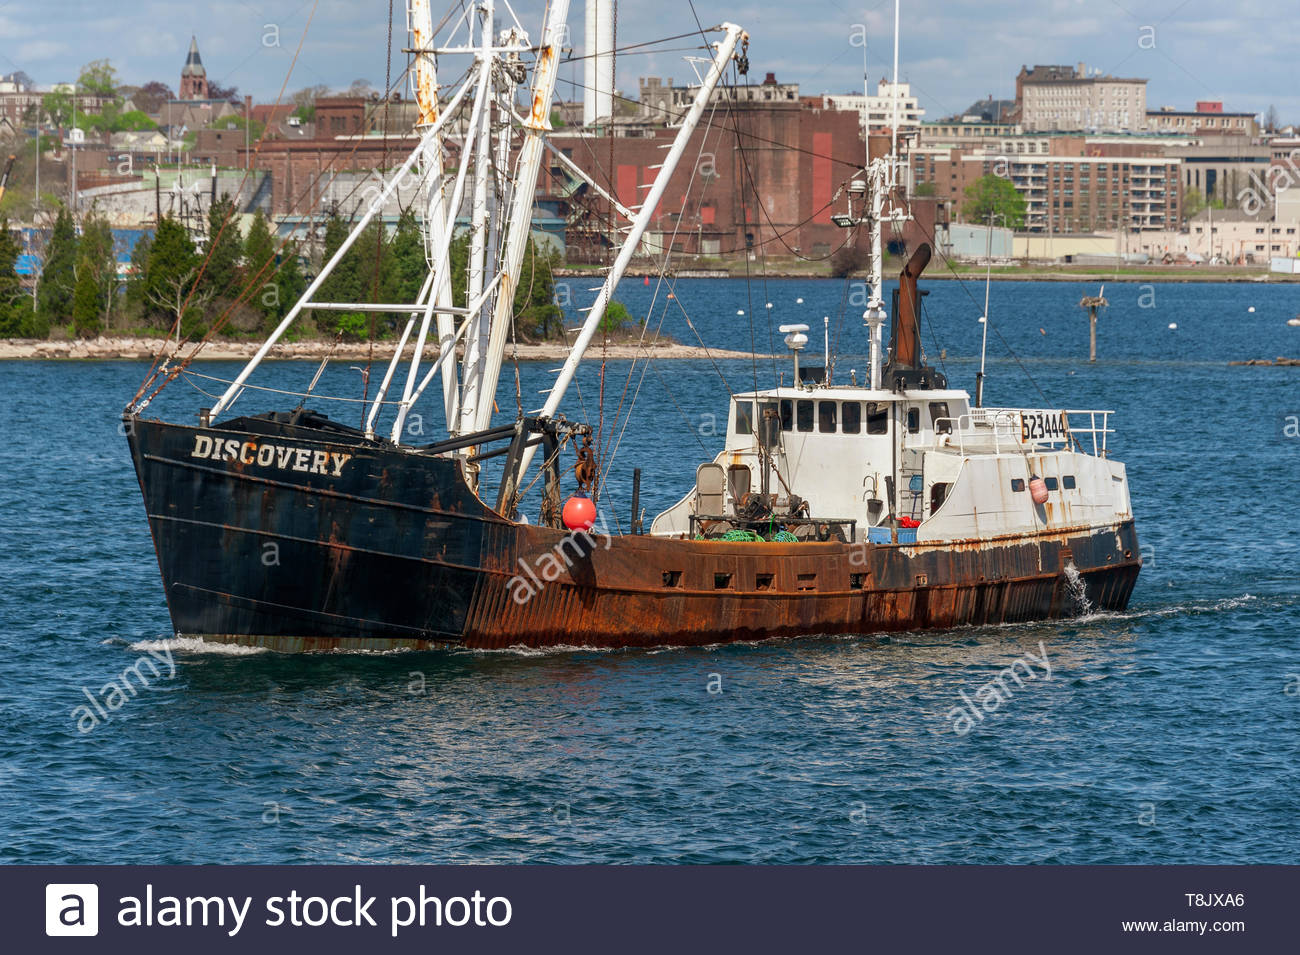 New Bedford, Massachusetts, USA - May 8, 2019: Eastern-rigged commercial fishing vessel Discovery heading out to sea - Stock Image